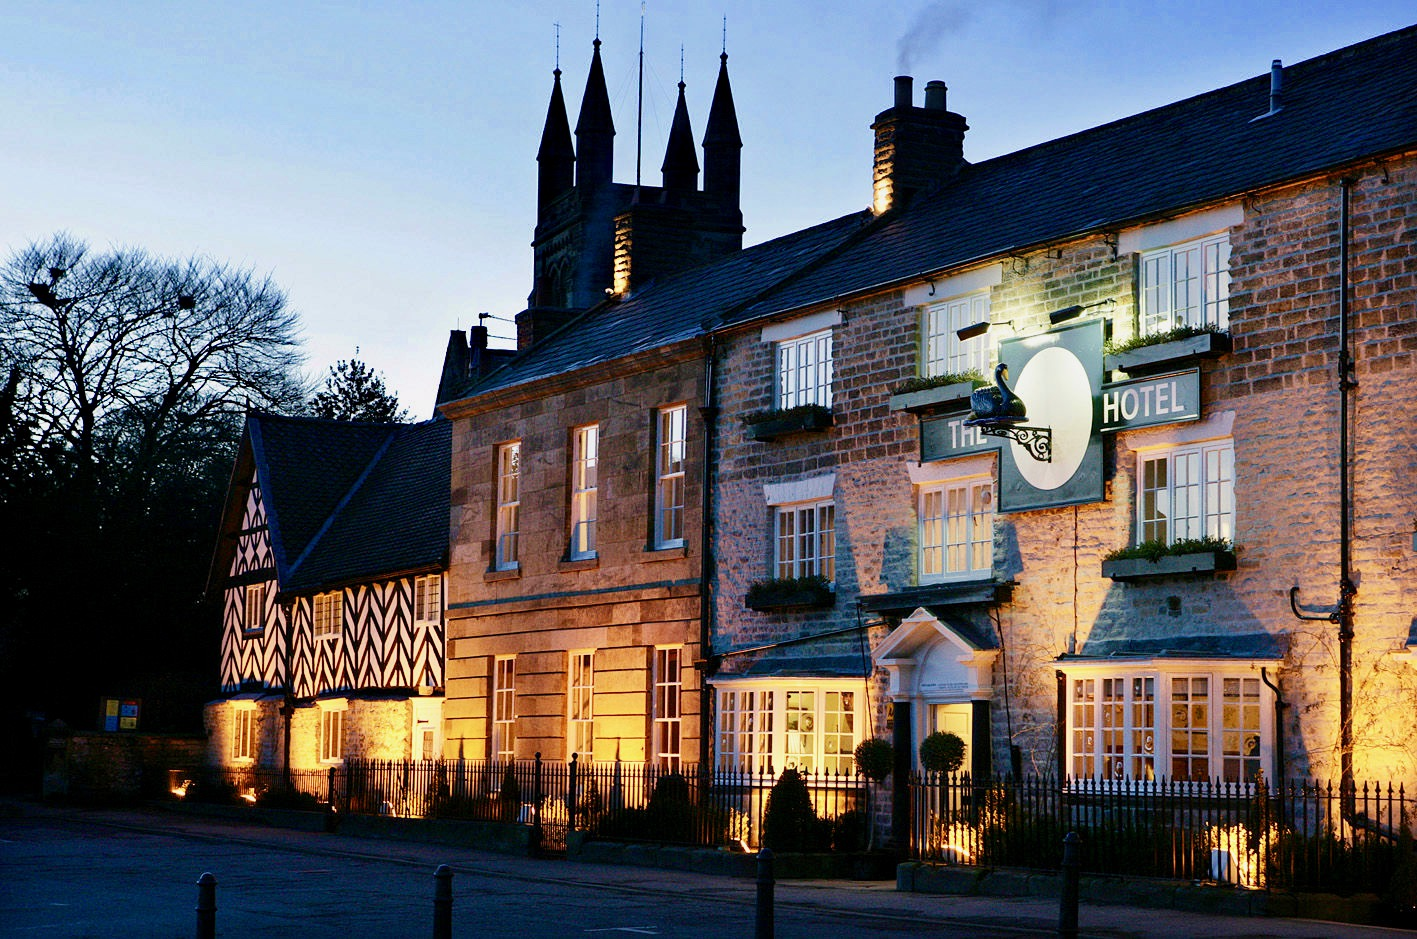 A Hotel Review of The Black Swan, Helmsley